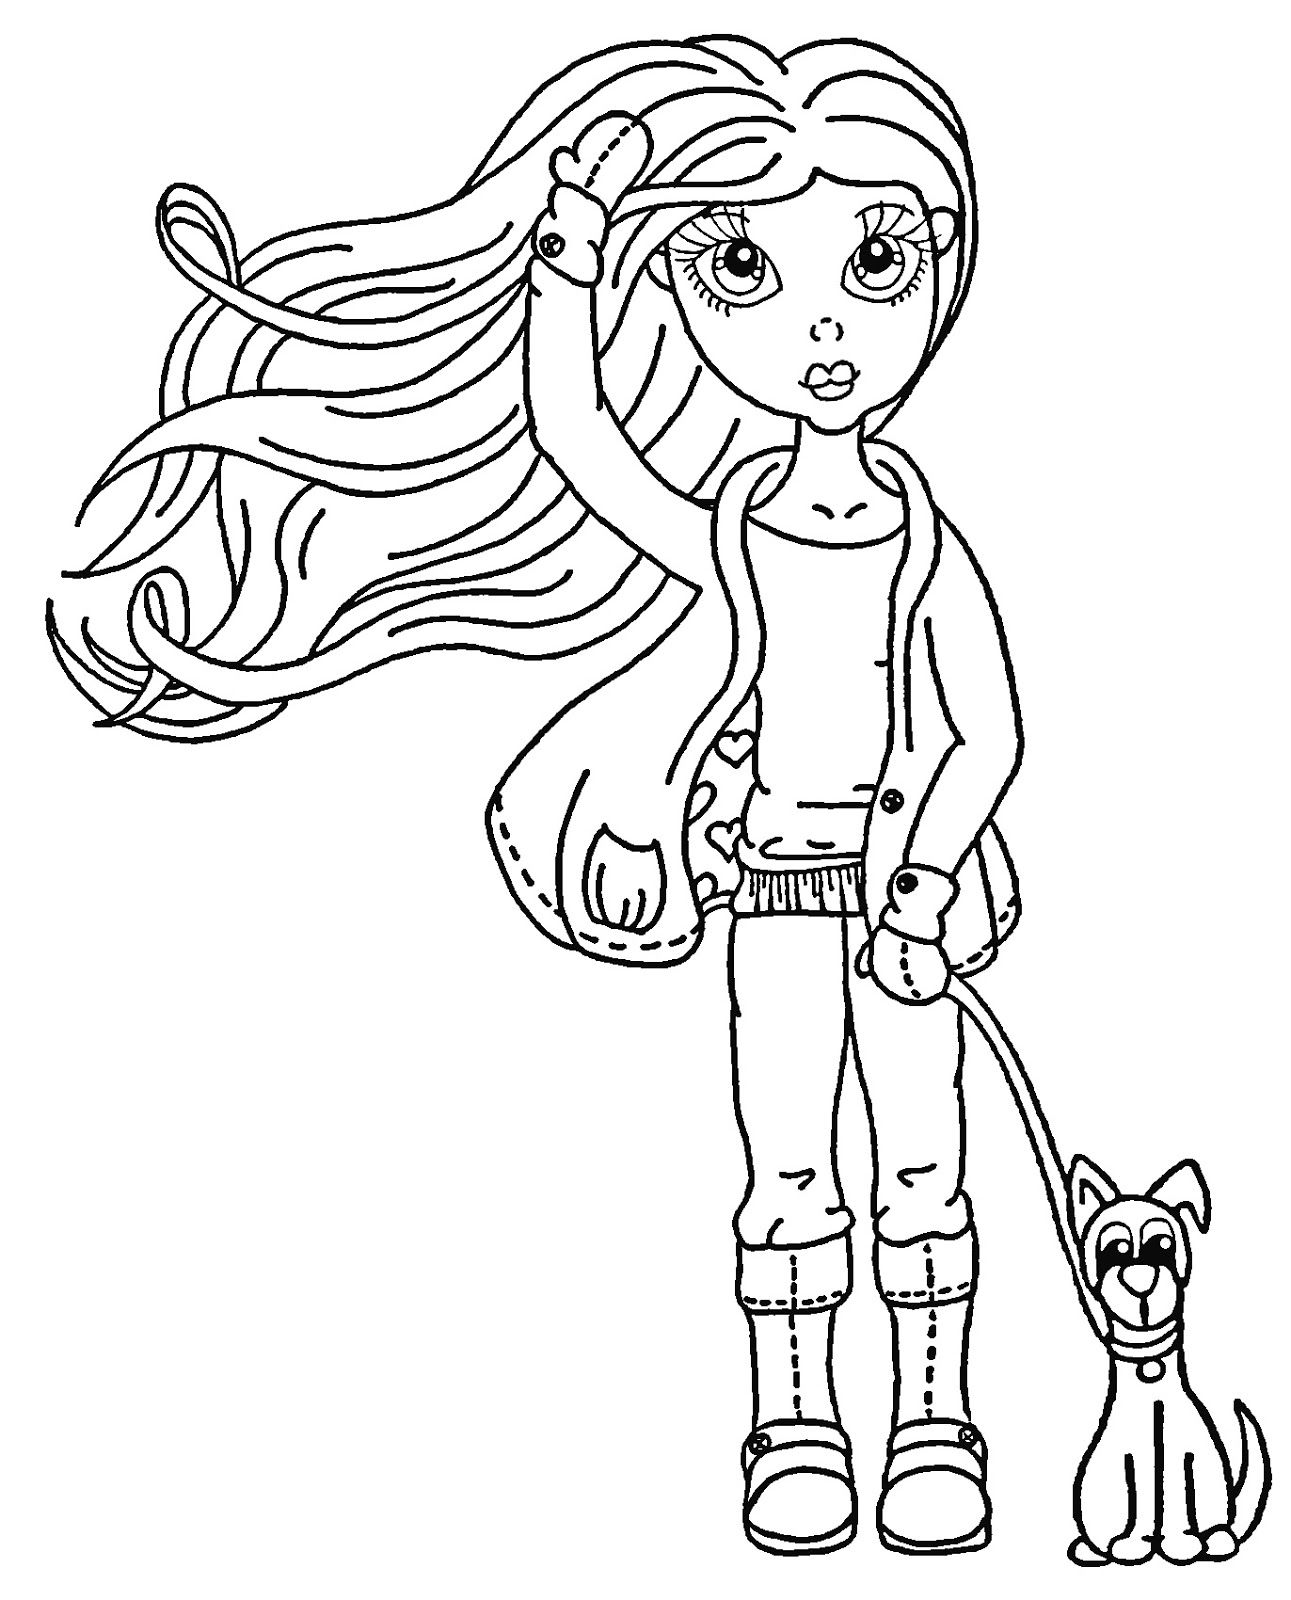 coloring cartoon characters black and white cartoon coloring pages to download and print for free coloring black characters cartoon white and